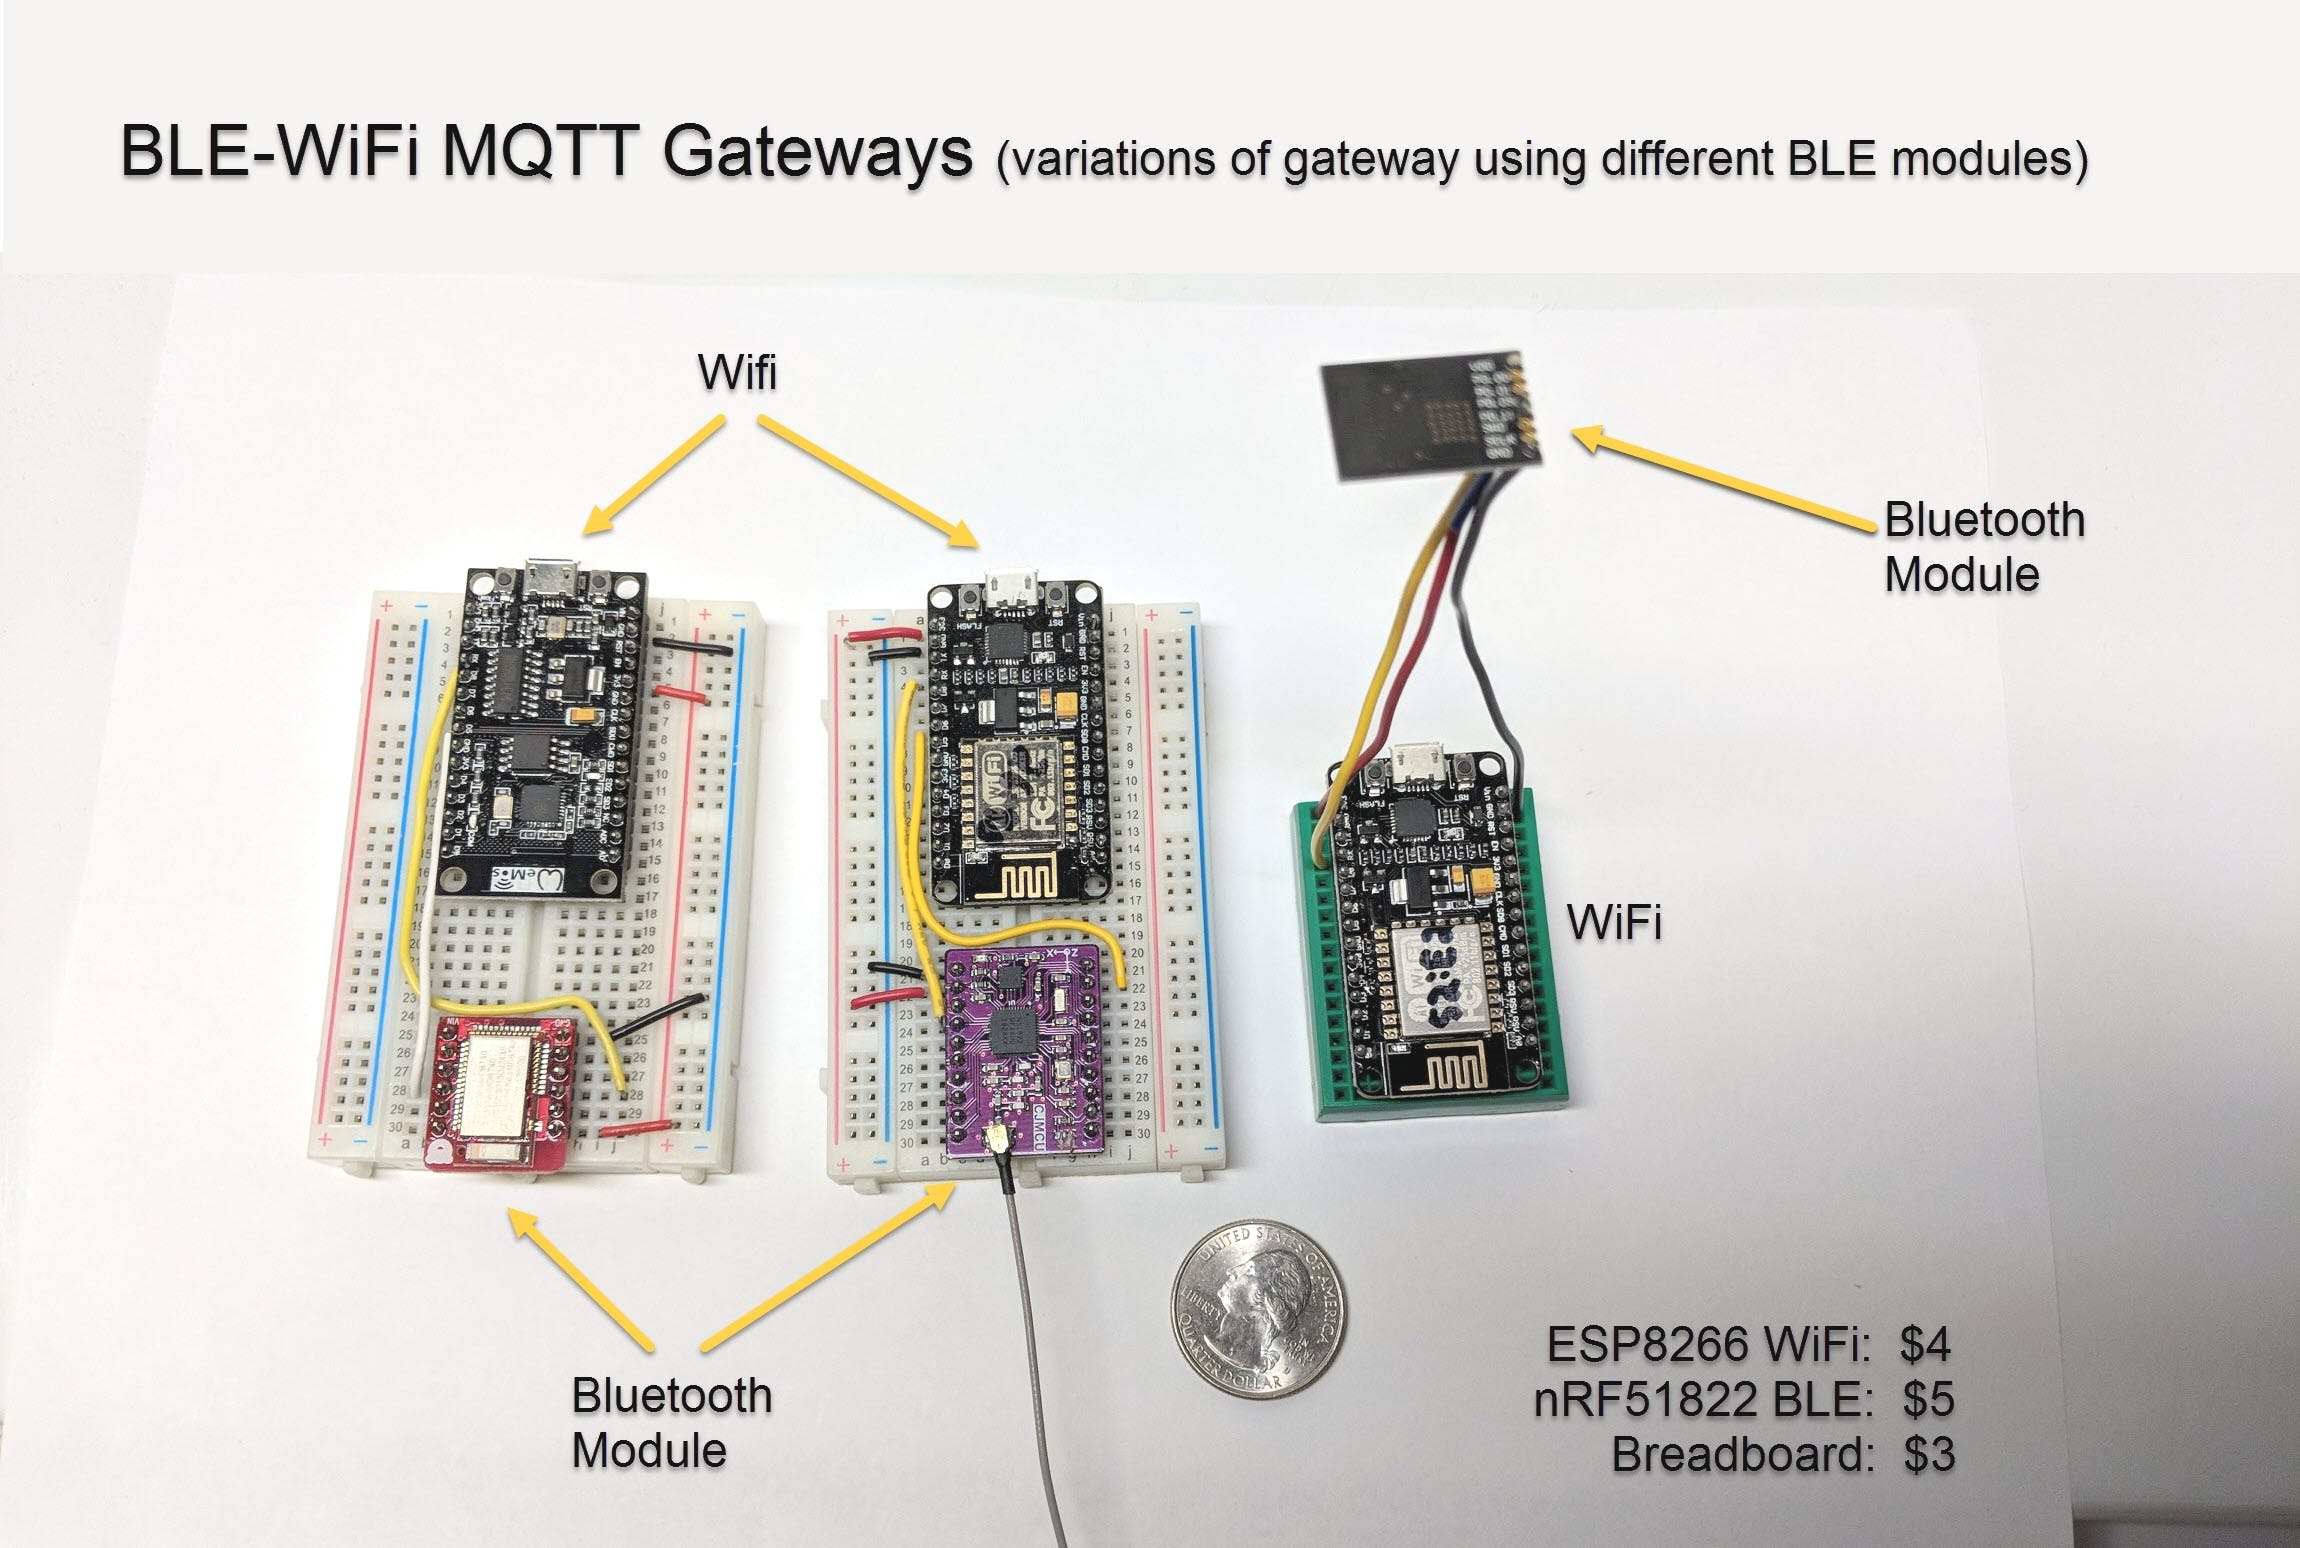 BLE-to-WiFi MQTT Gateways for typical home automation use cases